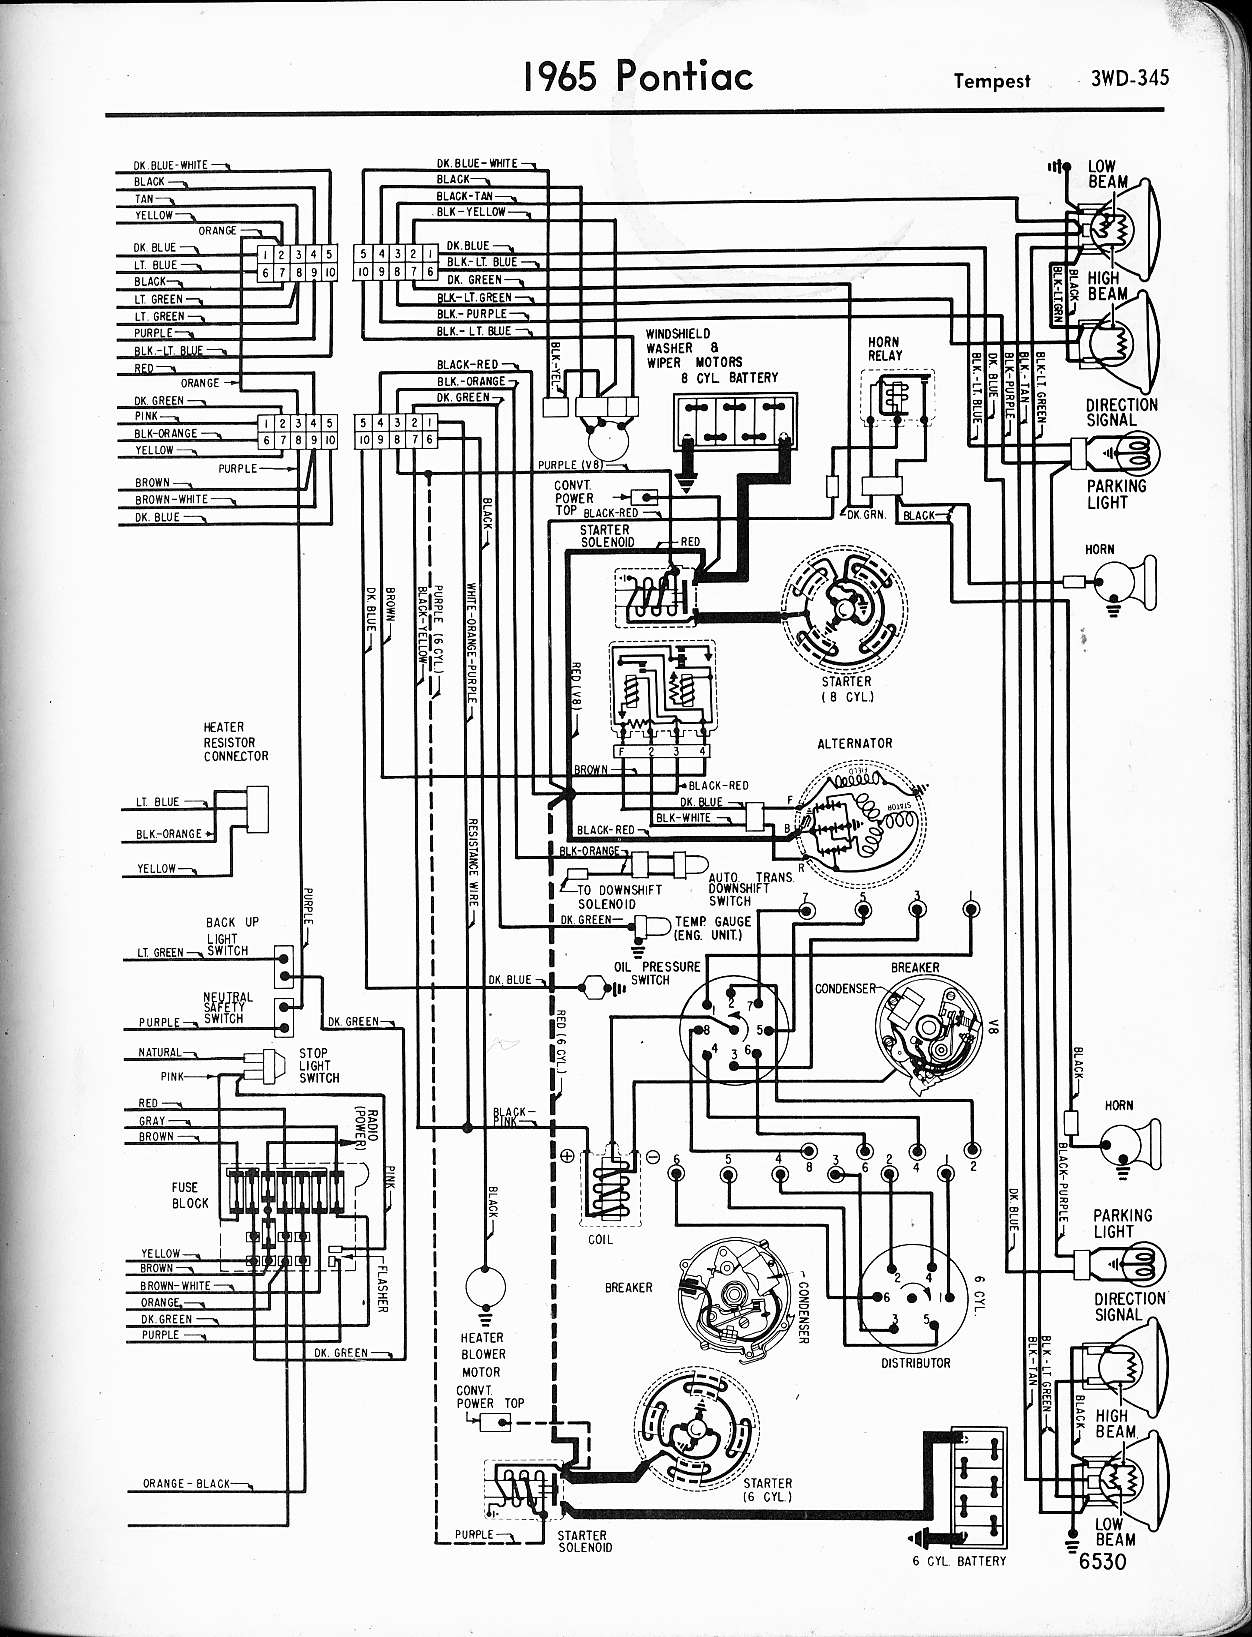 1969 Firebird Fuse Box Diagram Wiring Library Block For 1967 Mustang 1970 Gto Another Diagrams U2022 Rh Benpaterson Co Uk 1968